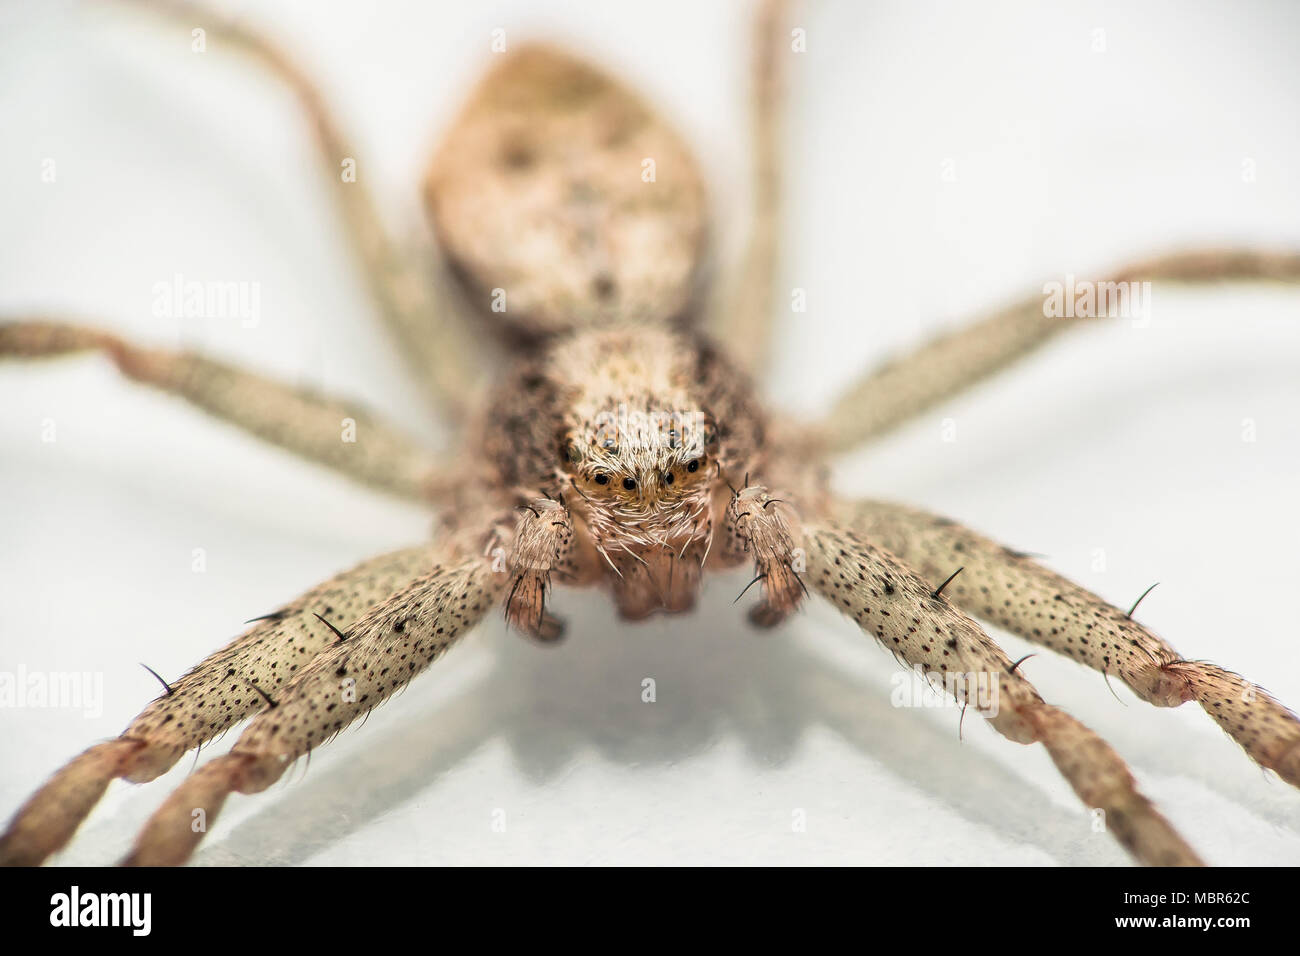 Portrait and detail of a buzzing spider on a white background - Stock Image